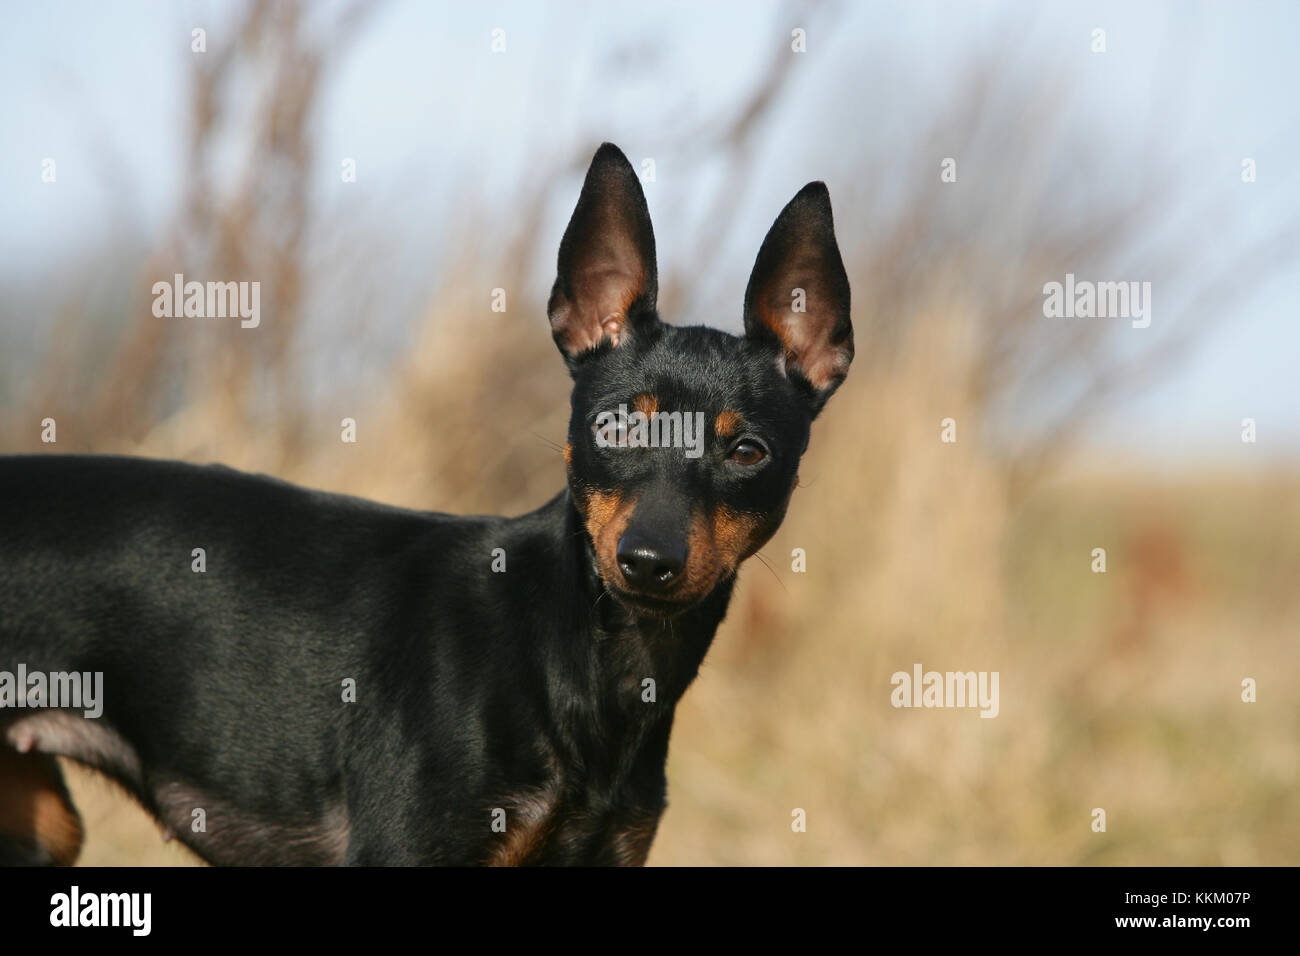 Terrier - English Toy English Toy Terrier Black-and-tan Toy Terrier - Stock Image